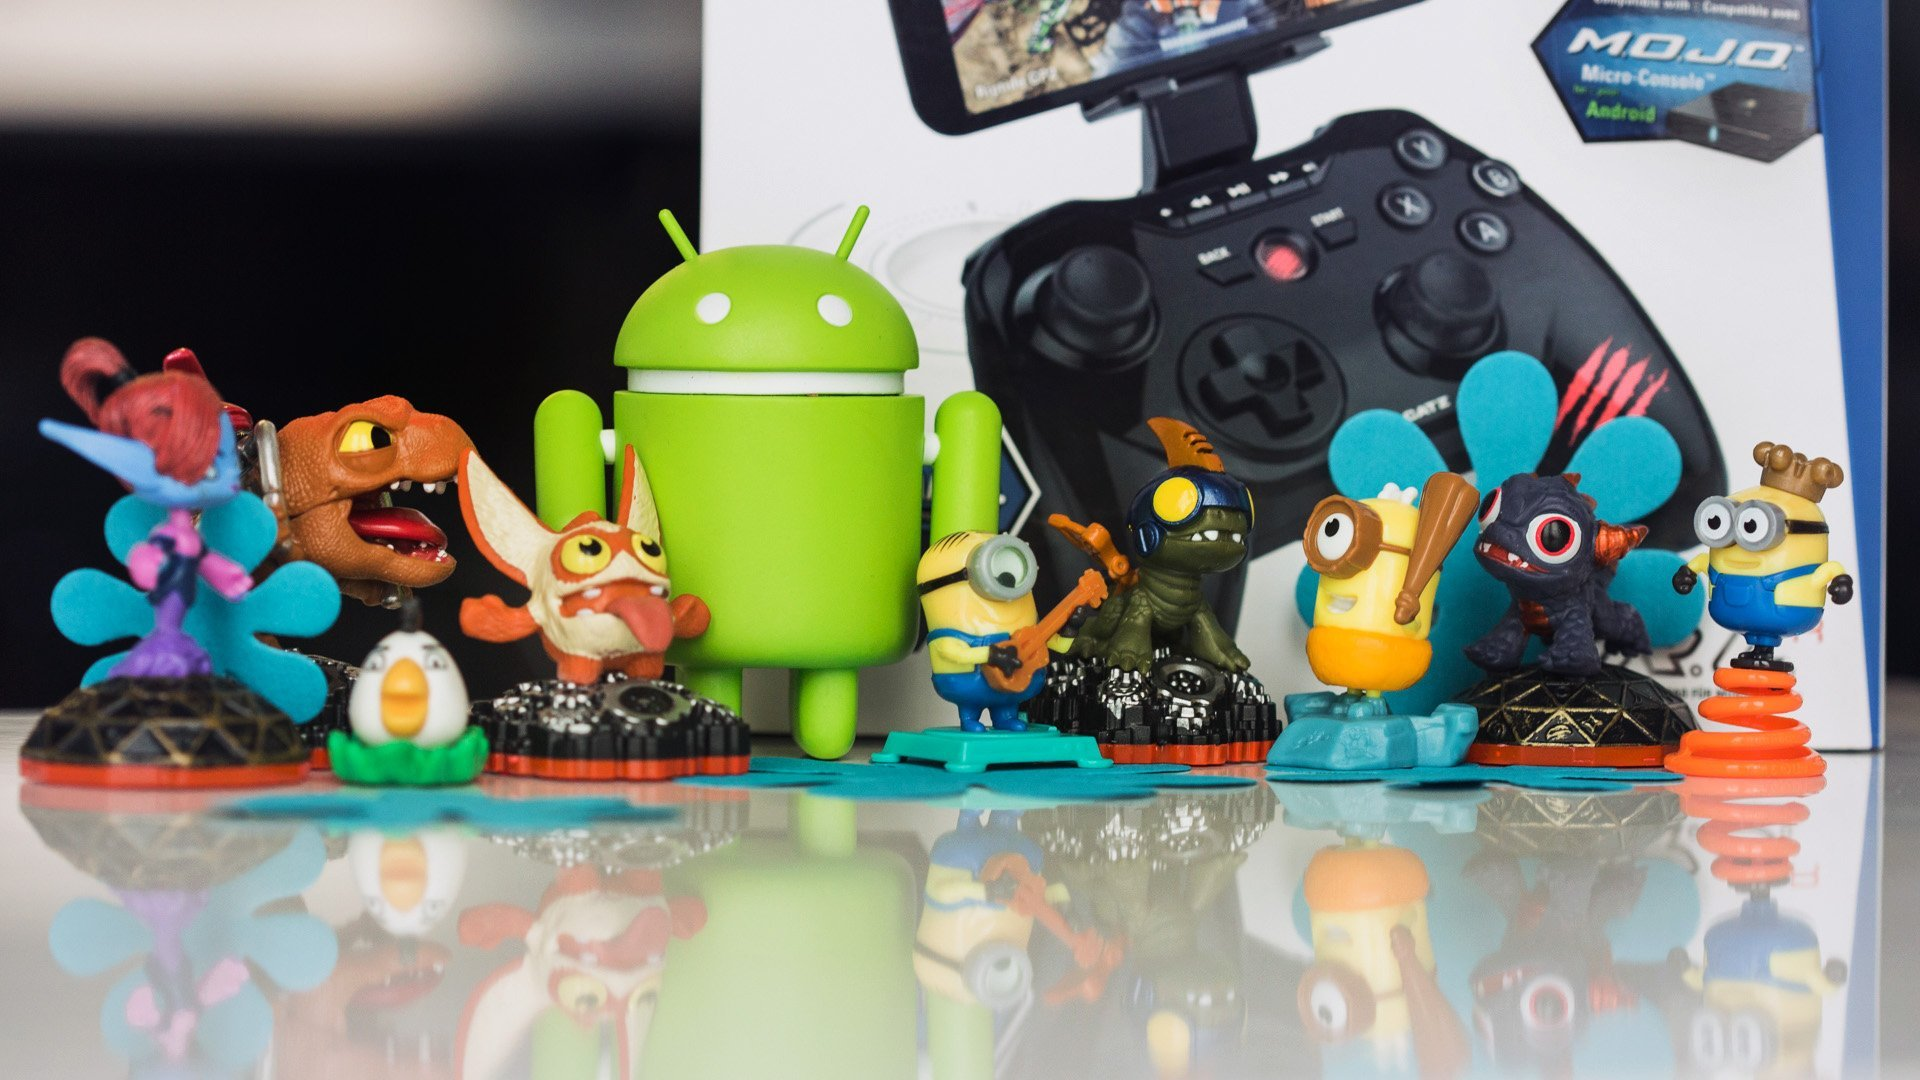 Best Android Games You Should Play In